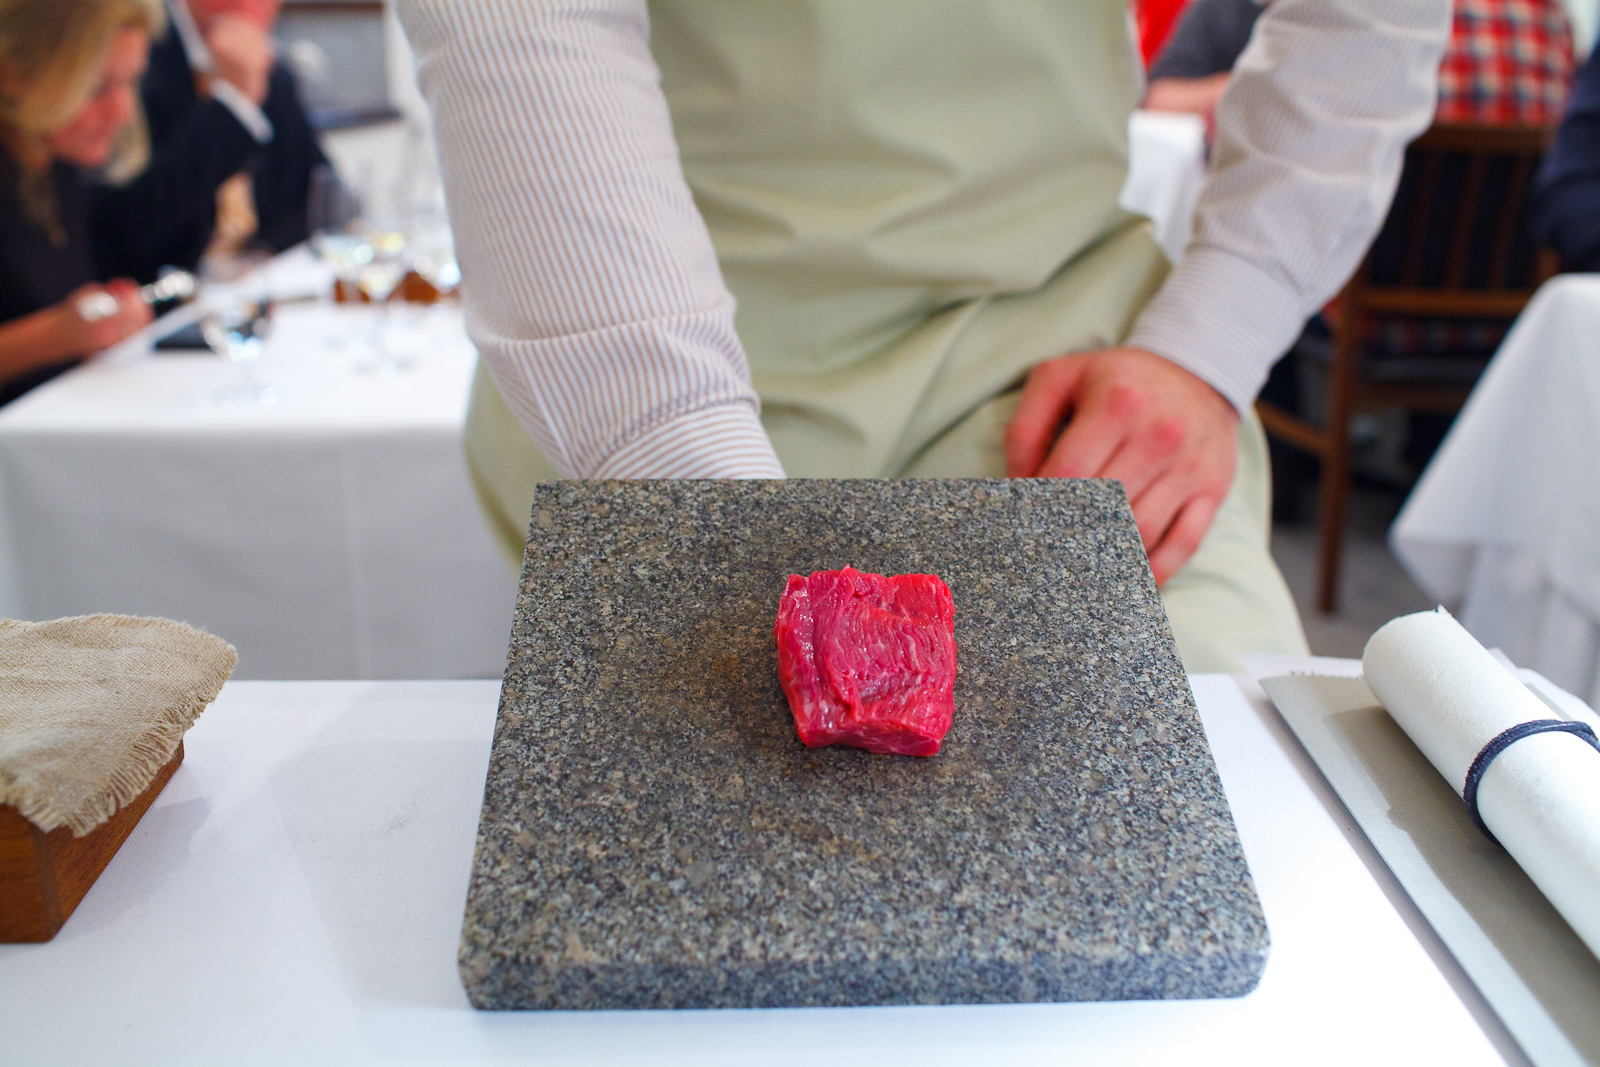 6th Course: Presentation of beef from a Swedish milk cow in three servings.